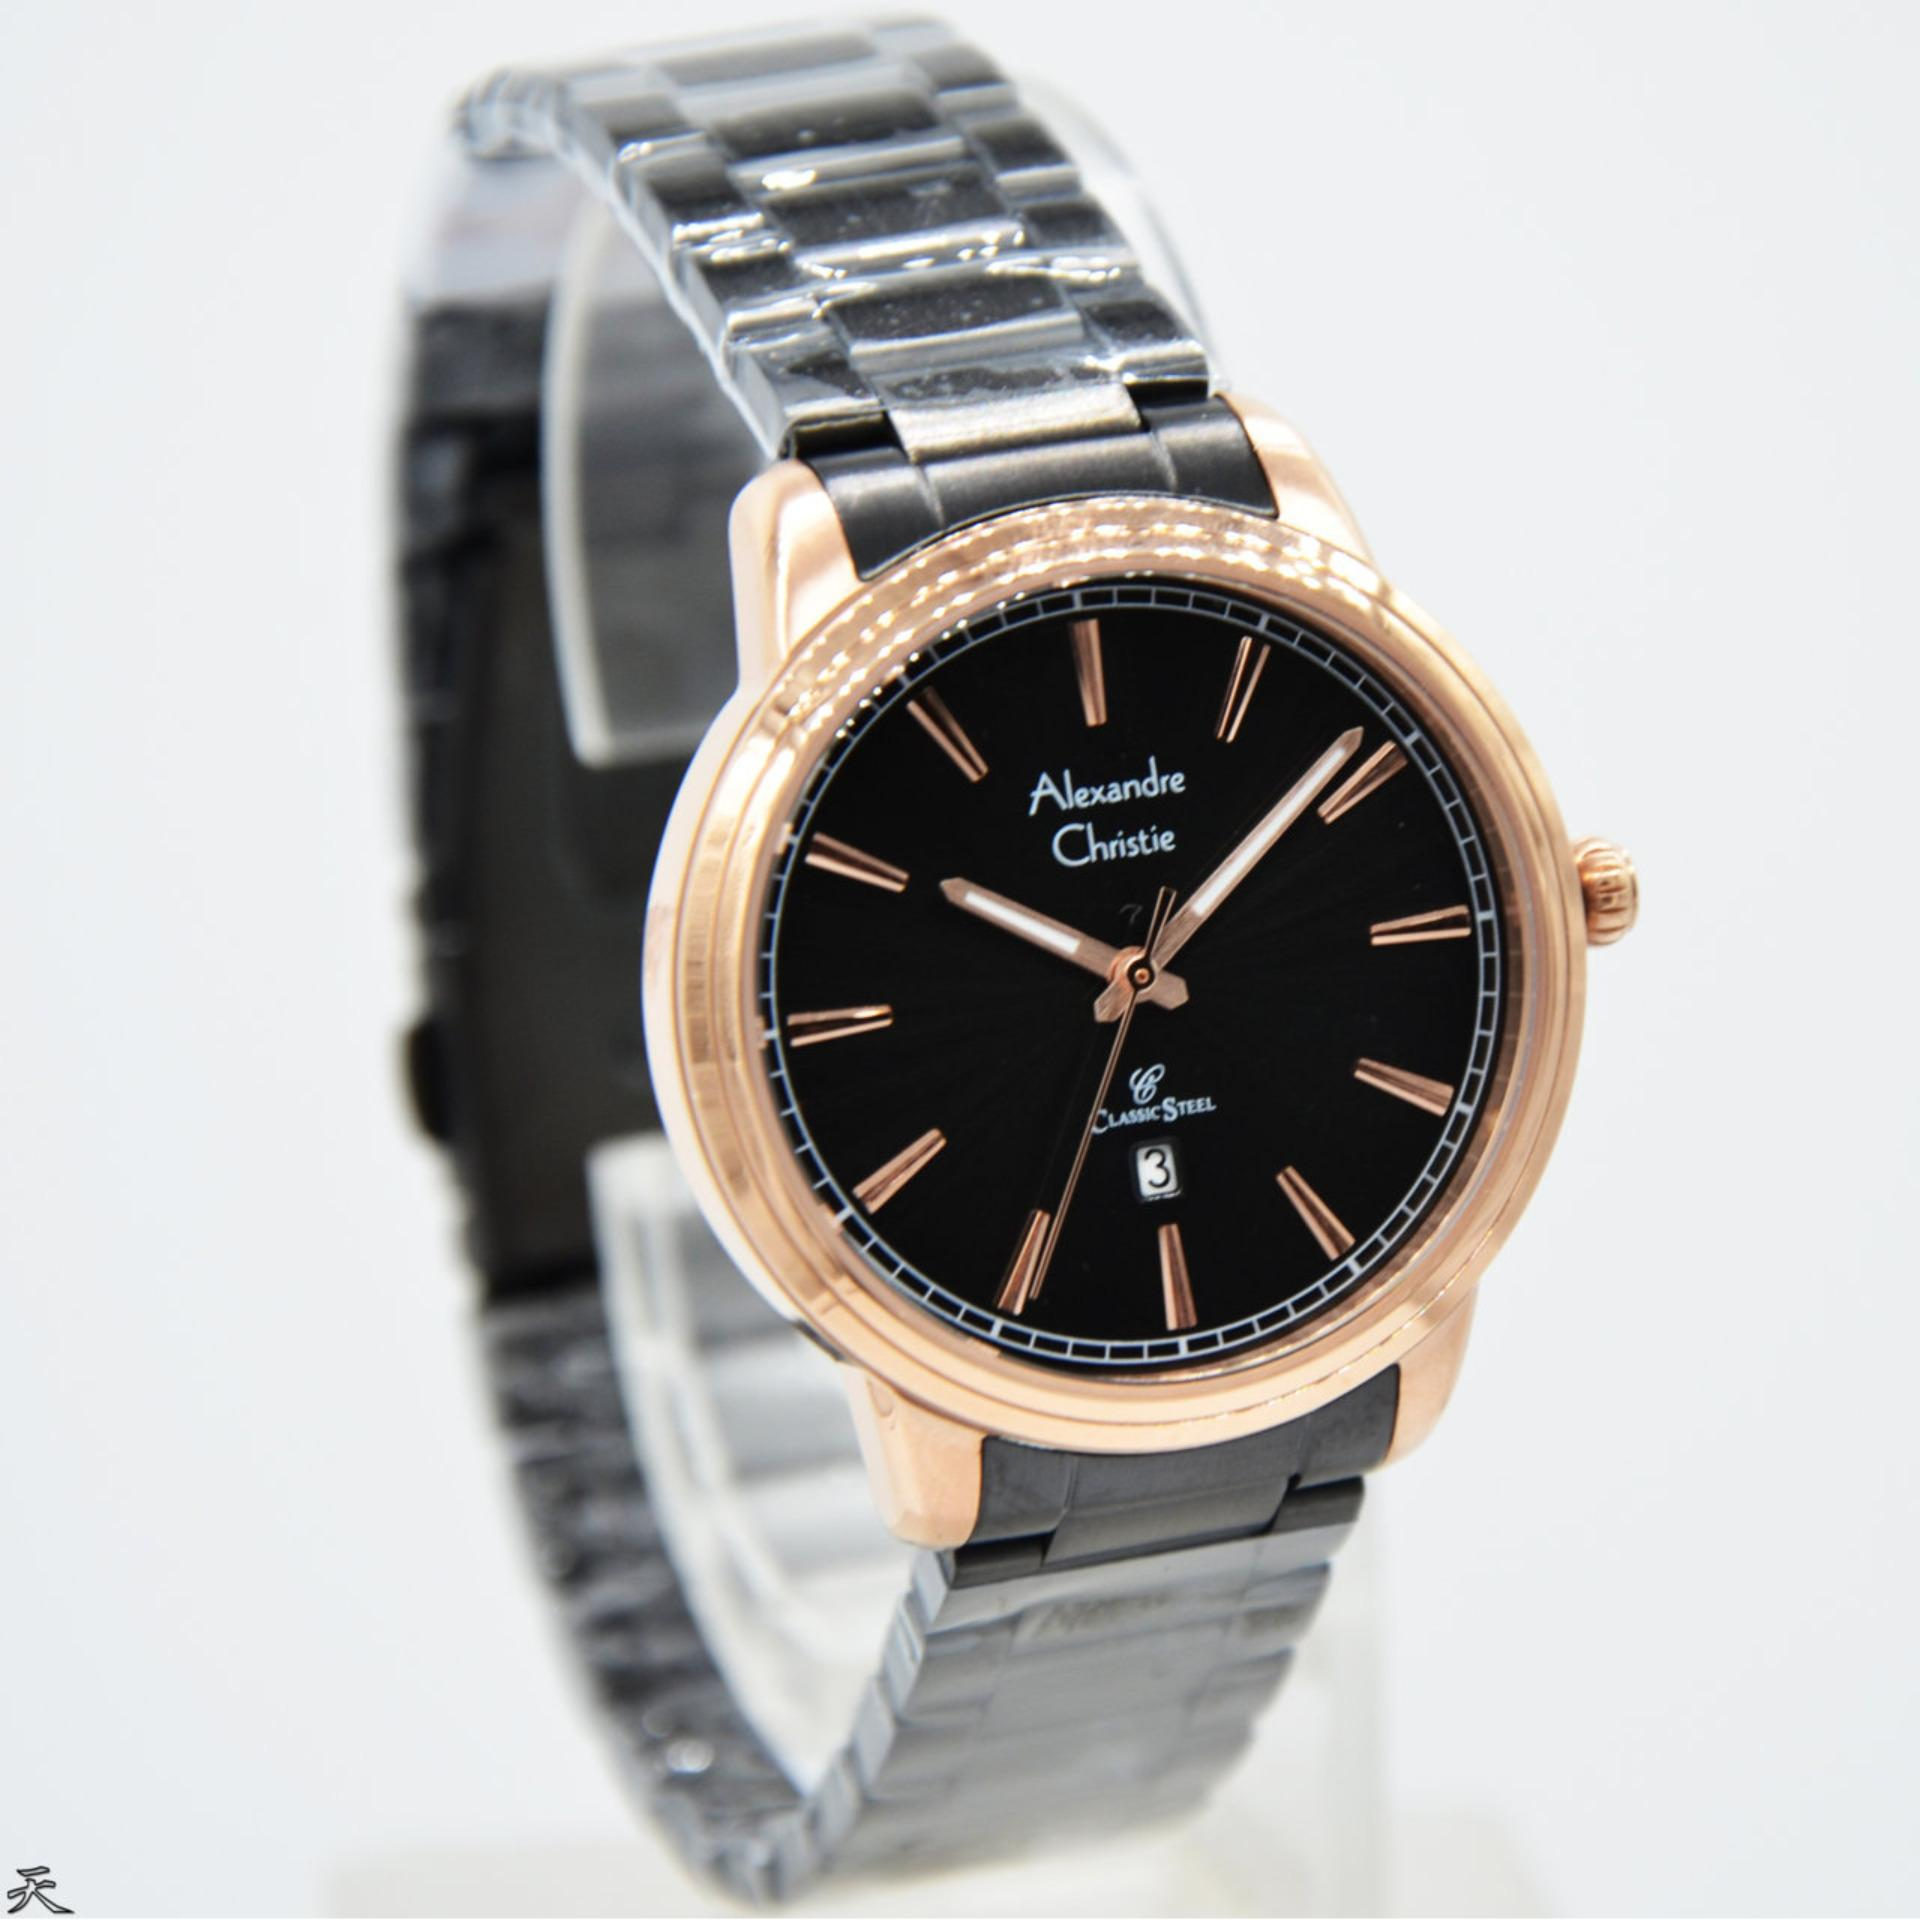 Buy Sell Cheapest Alexandre Christie Ac8556l Best Quality Product Jam Tangan 01 Original Wanita Stainless Steel Hitam Rose Gold